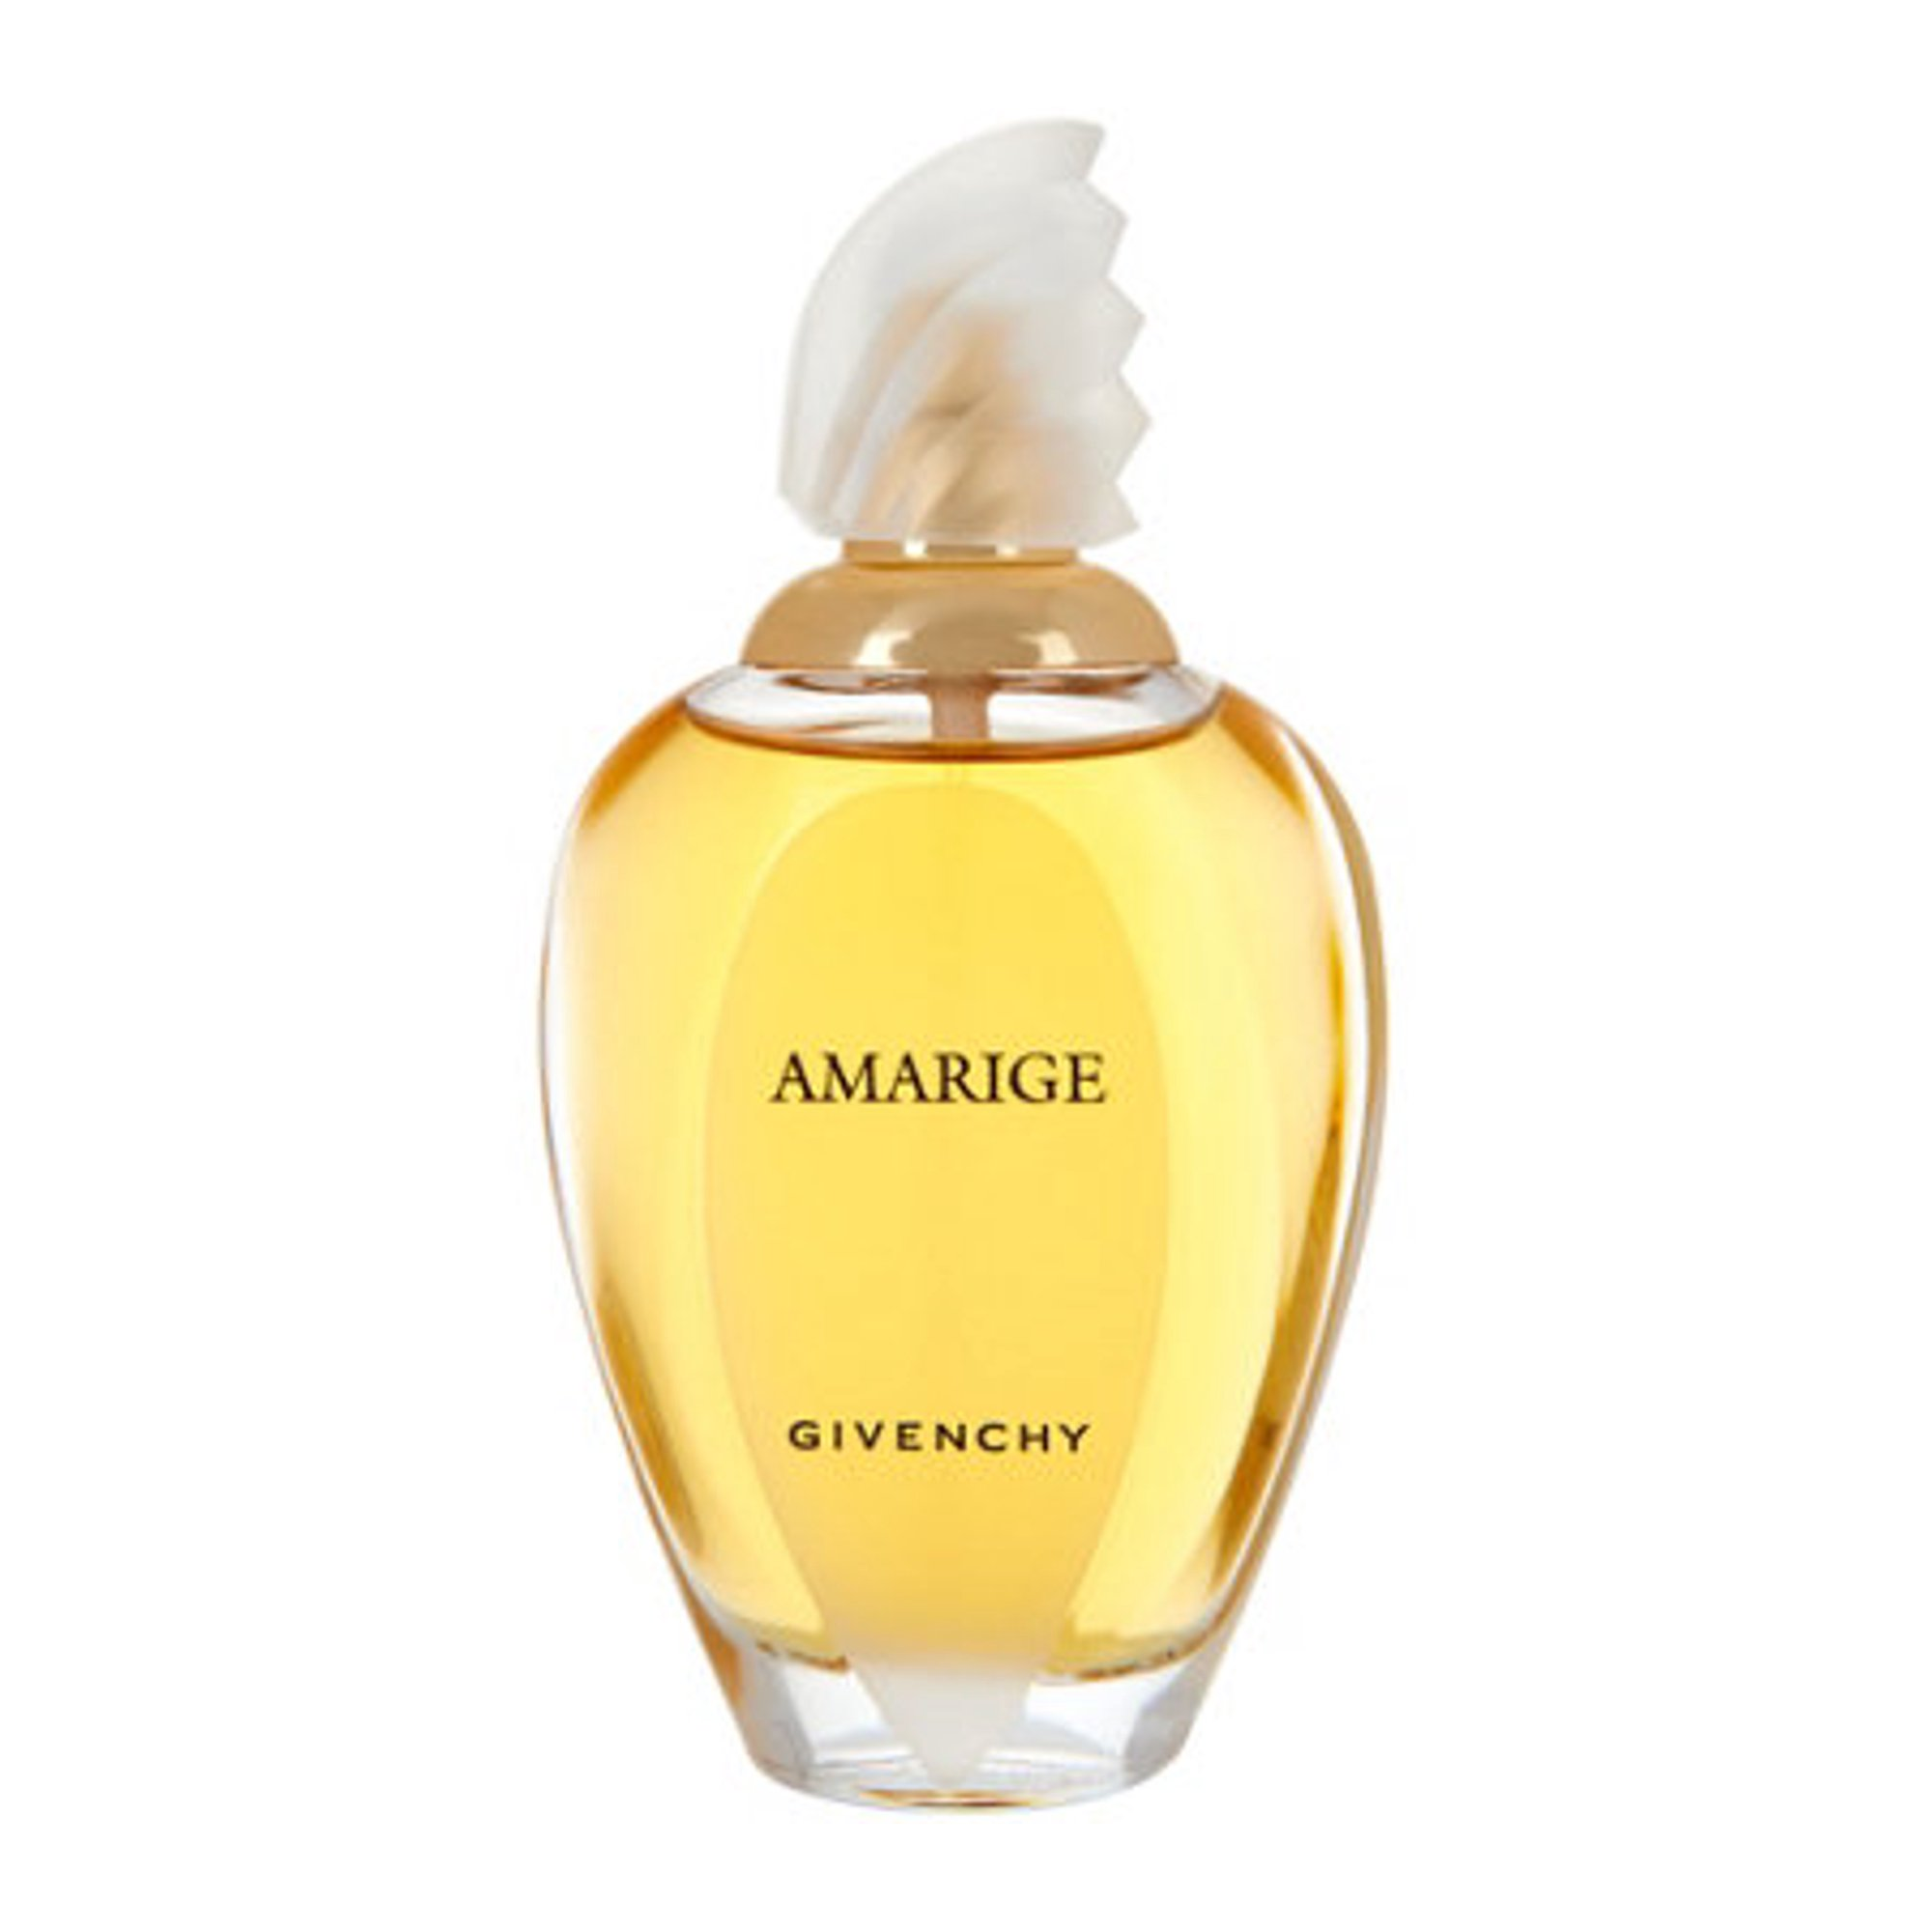 Buy Givenchy Amarige Perfume For Women 1 Oz Cheapest Givenchy